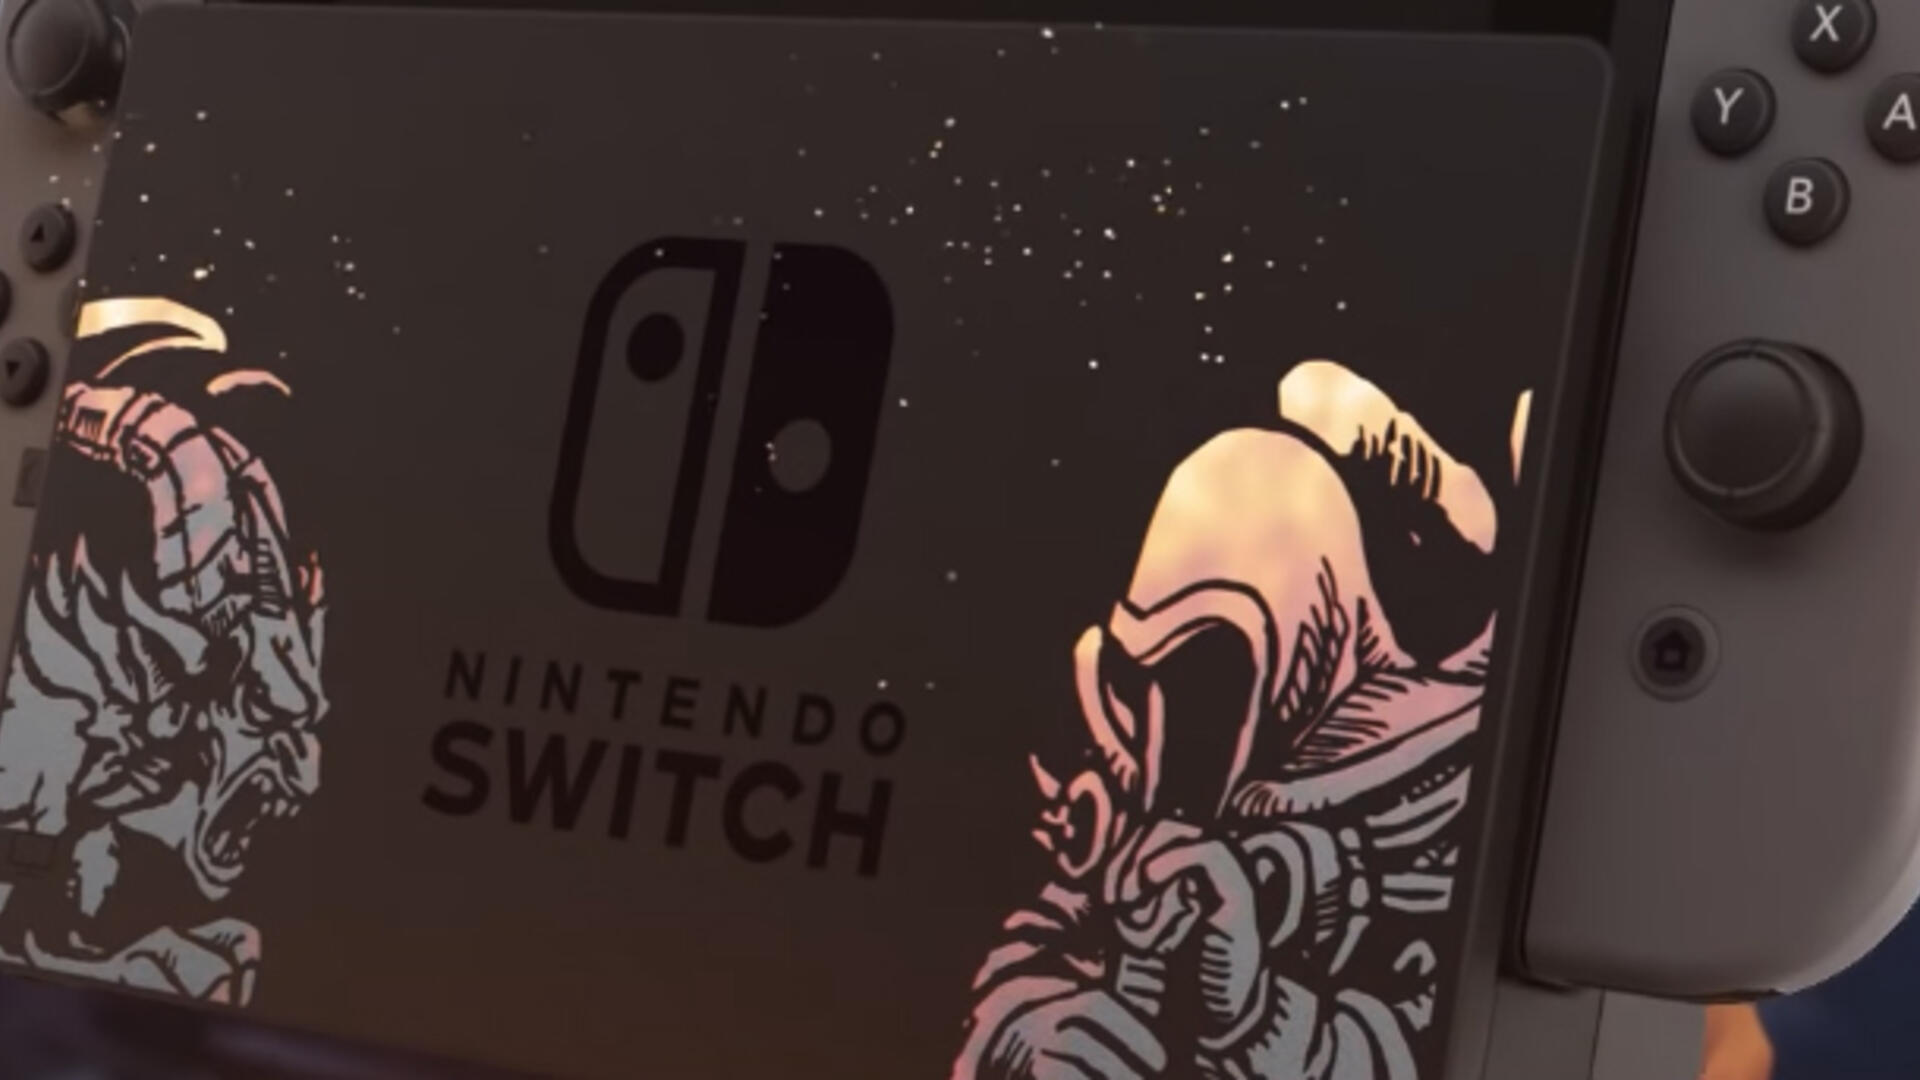 Nintendo Switch Diablo 3 Bundle Includes Exclusive Decals on Console, Dock, and Carry Case